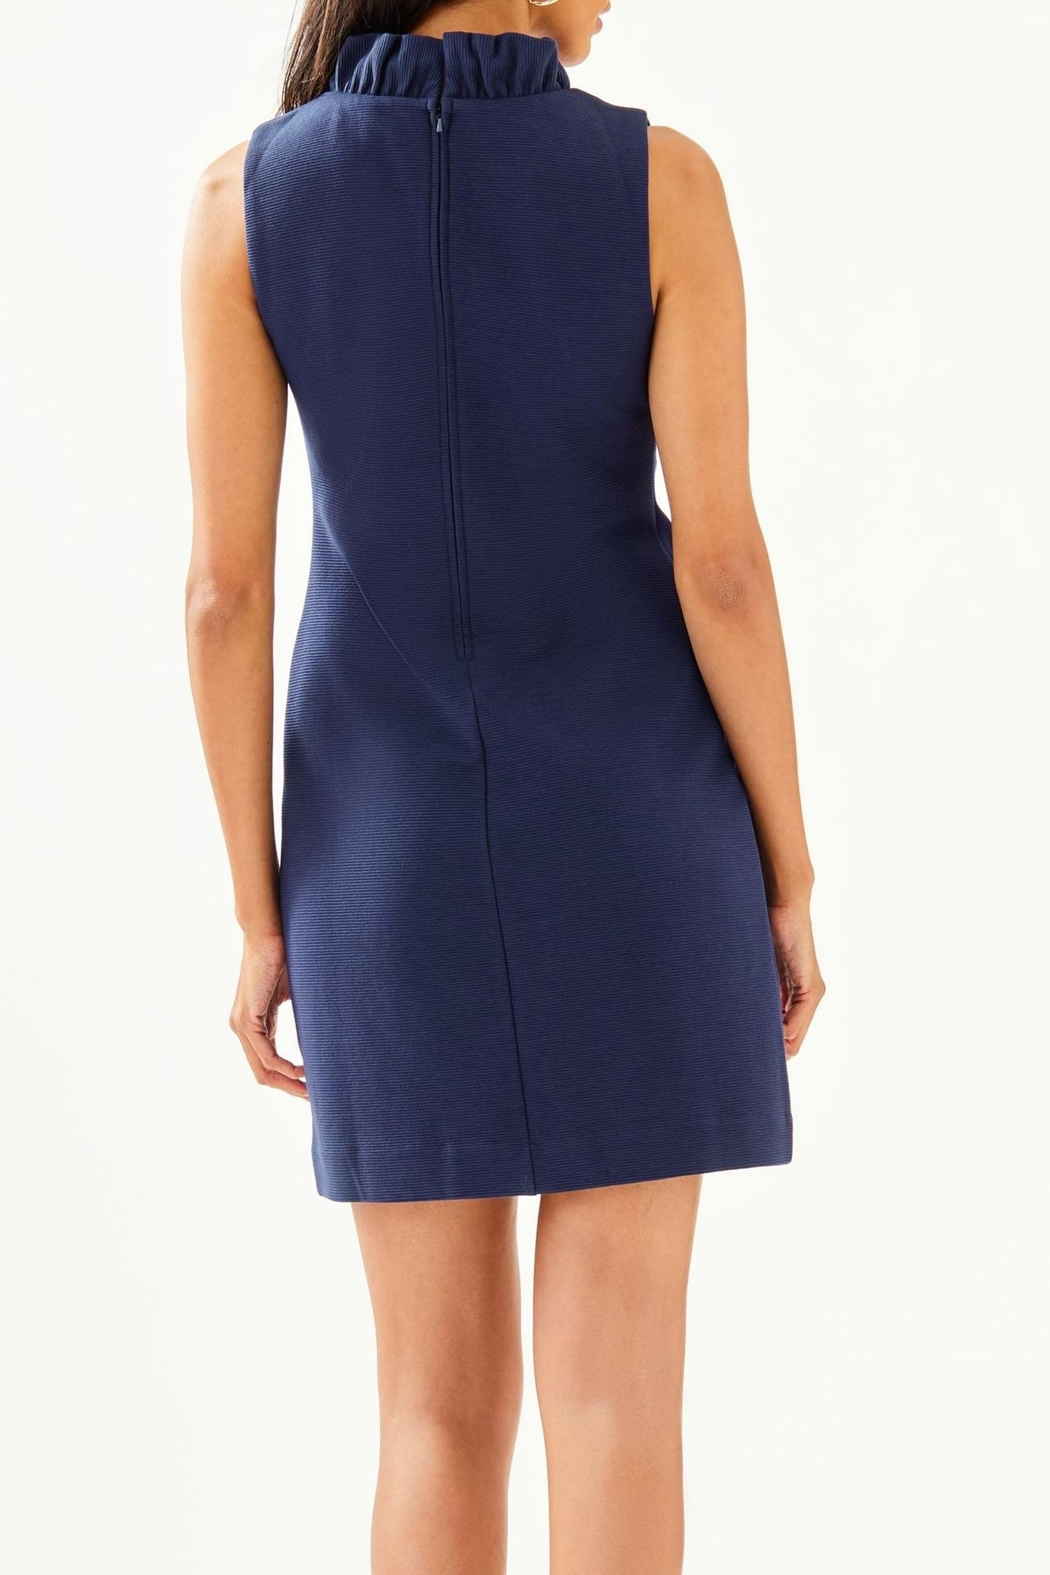 Lilly Pulitzer Tisbury Shift Dress - Front Full Image